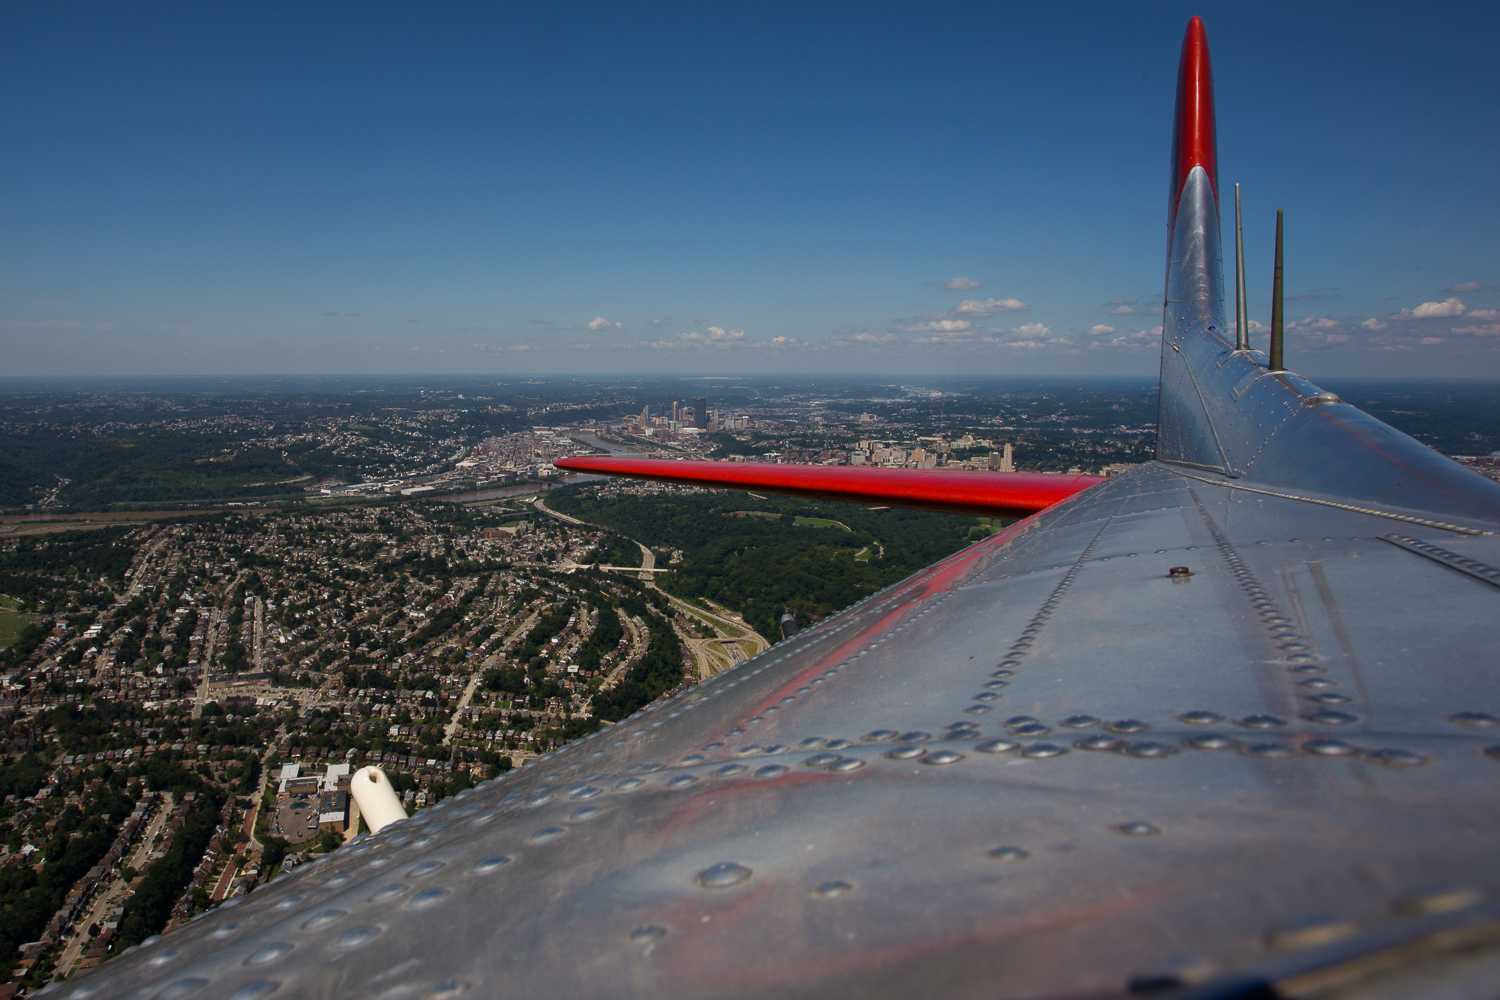 The Madras Maiden, one of the last remaining B-17 bombers, flies back to the Allegheny County Airport during a media flight Monday. (Photo by John Hamilton | Editor-in-Chief)